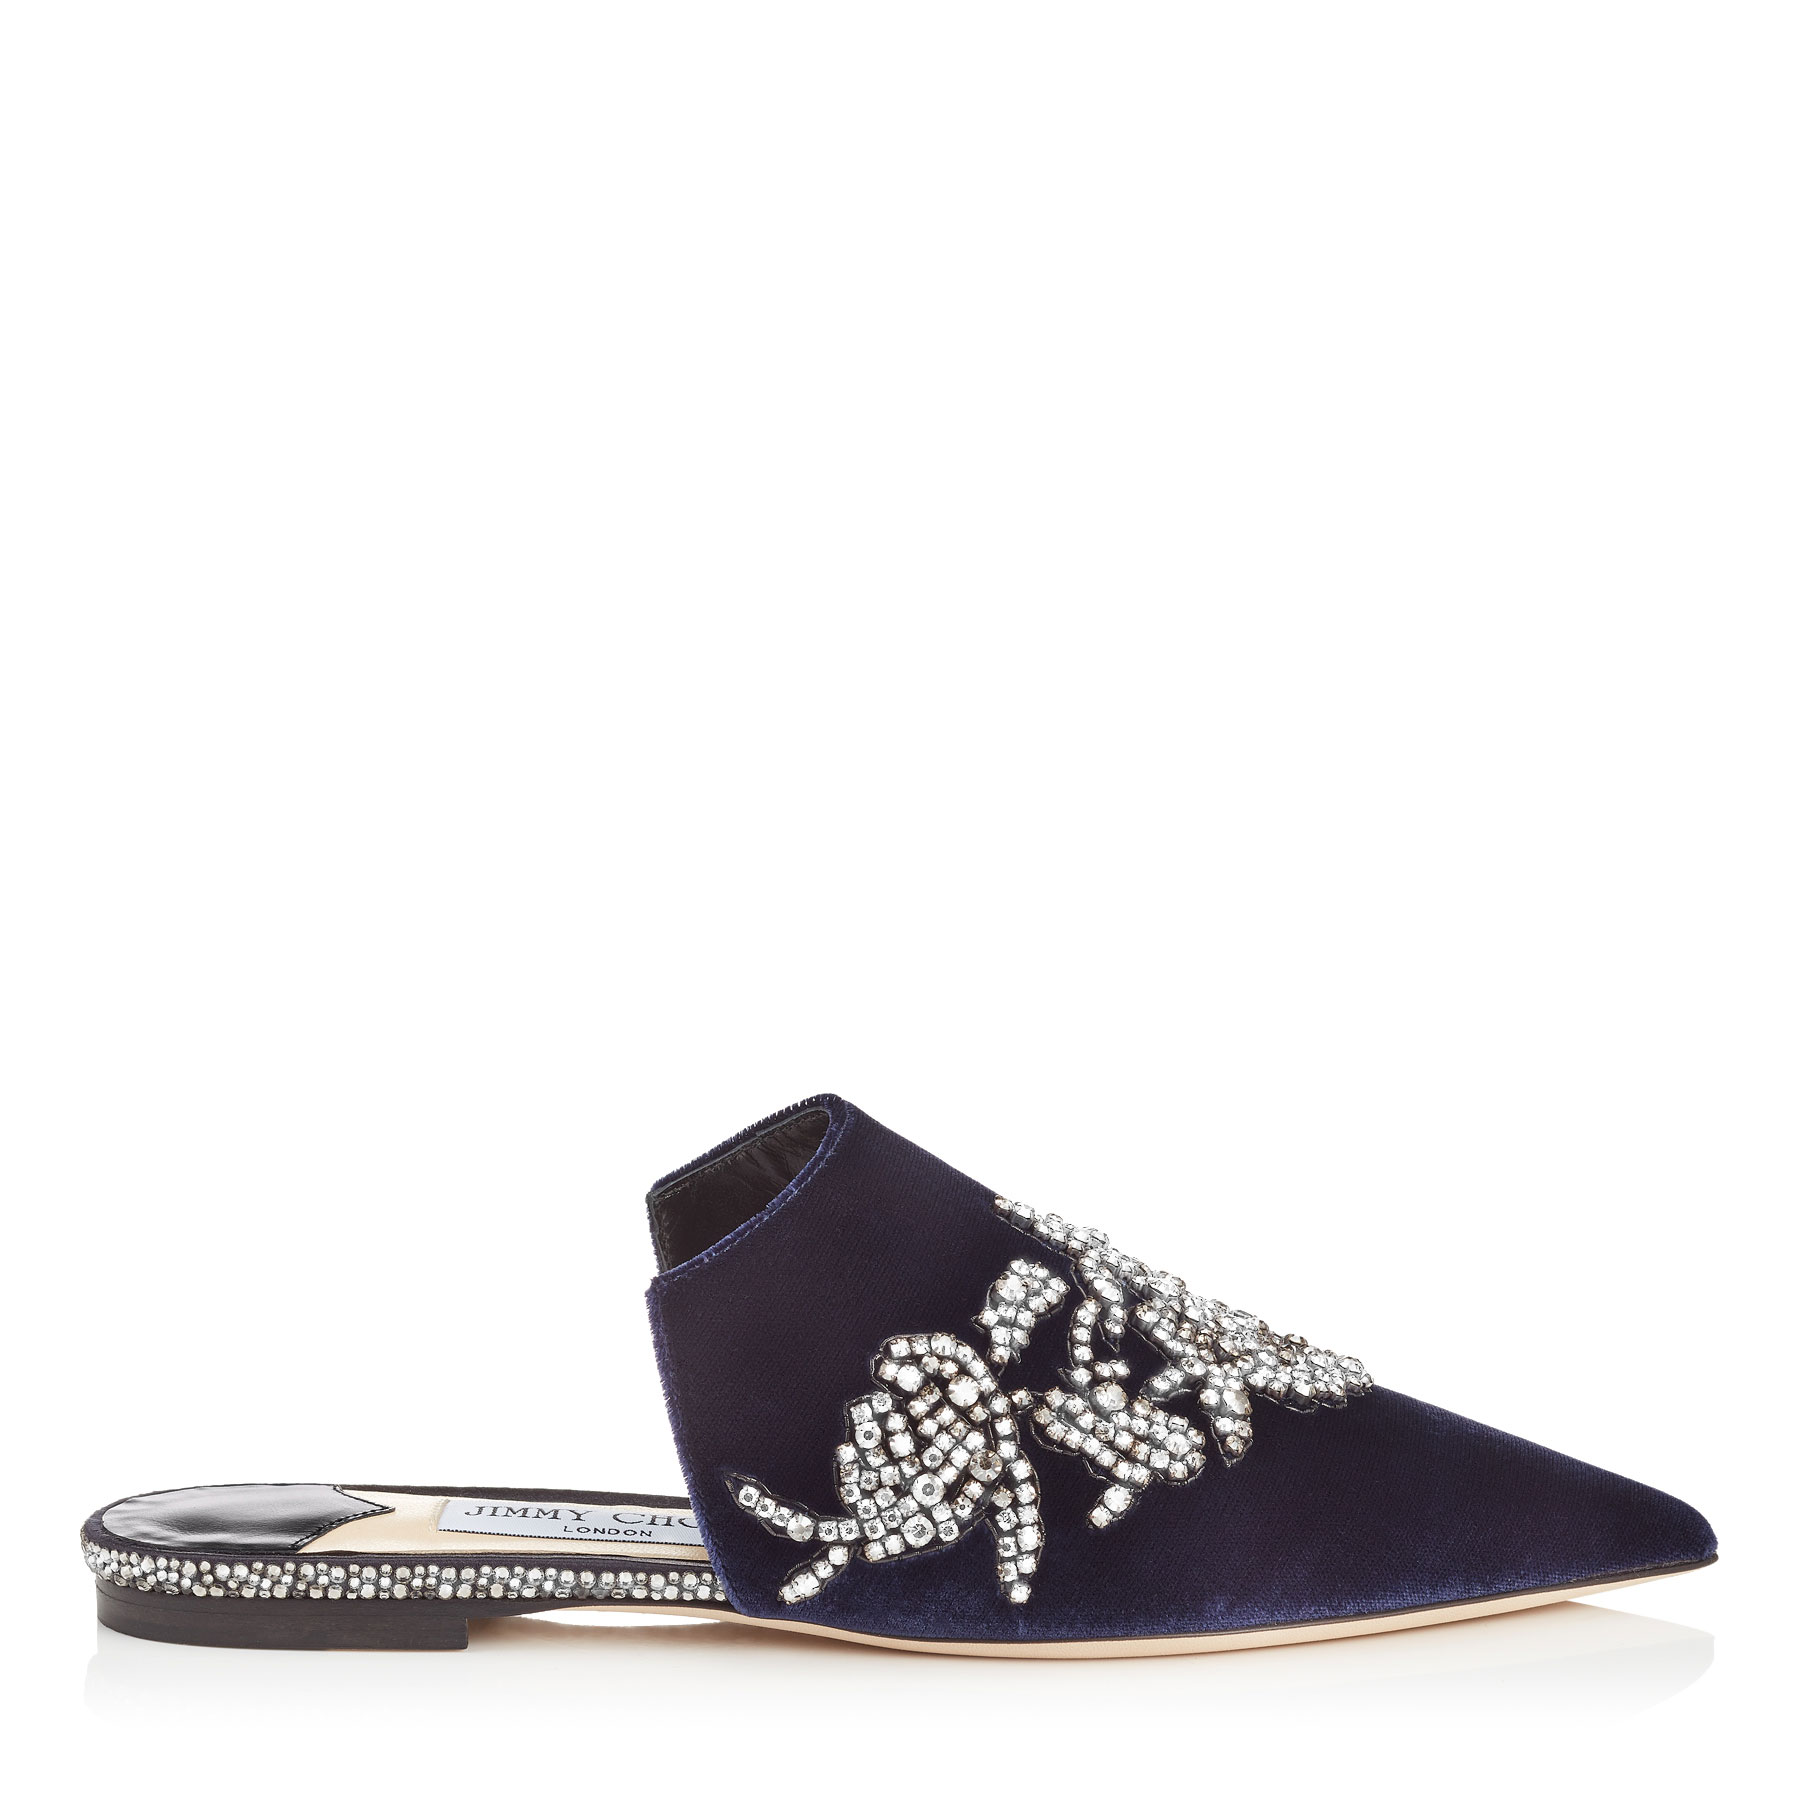 RACHEL FLAT Navy Velvet Mules with Peony Crystal Embroidery by Jimmy Choo